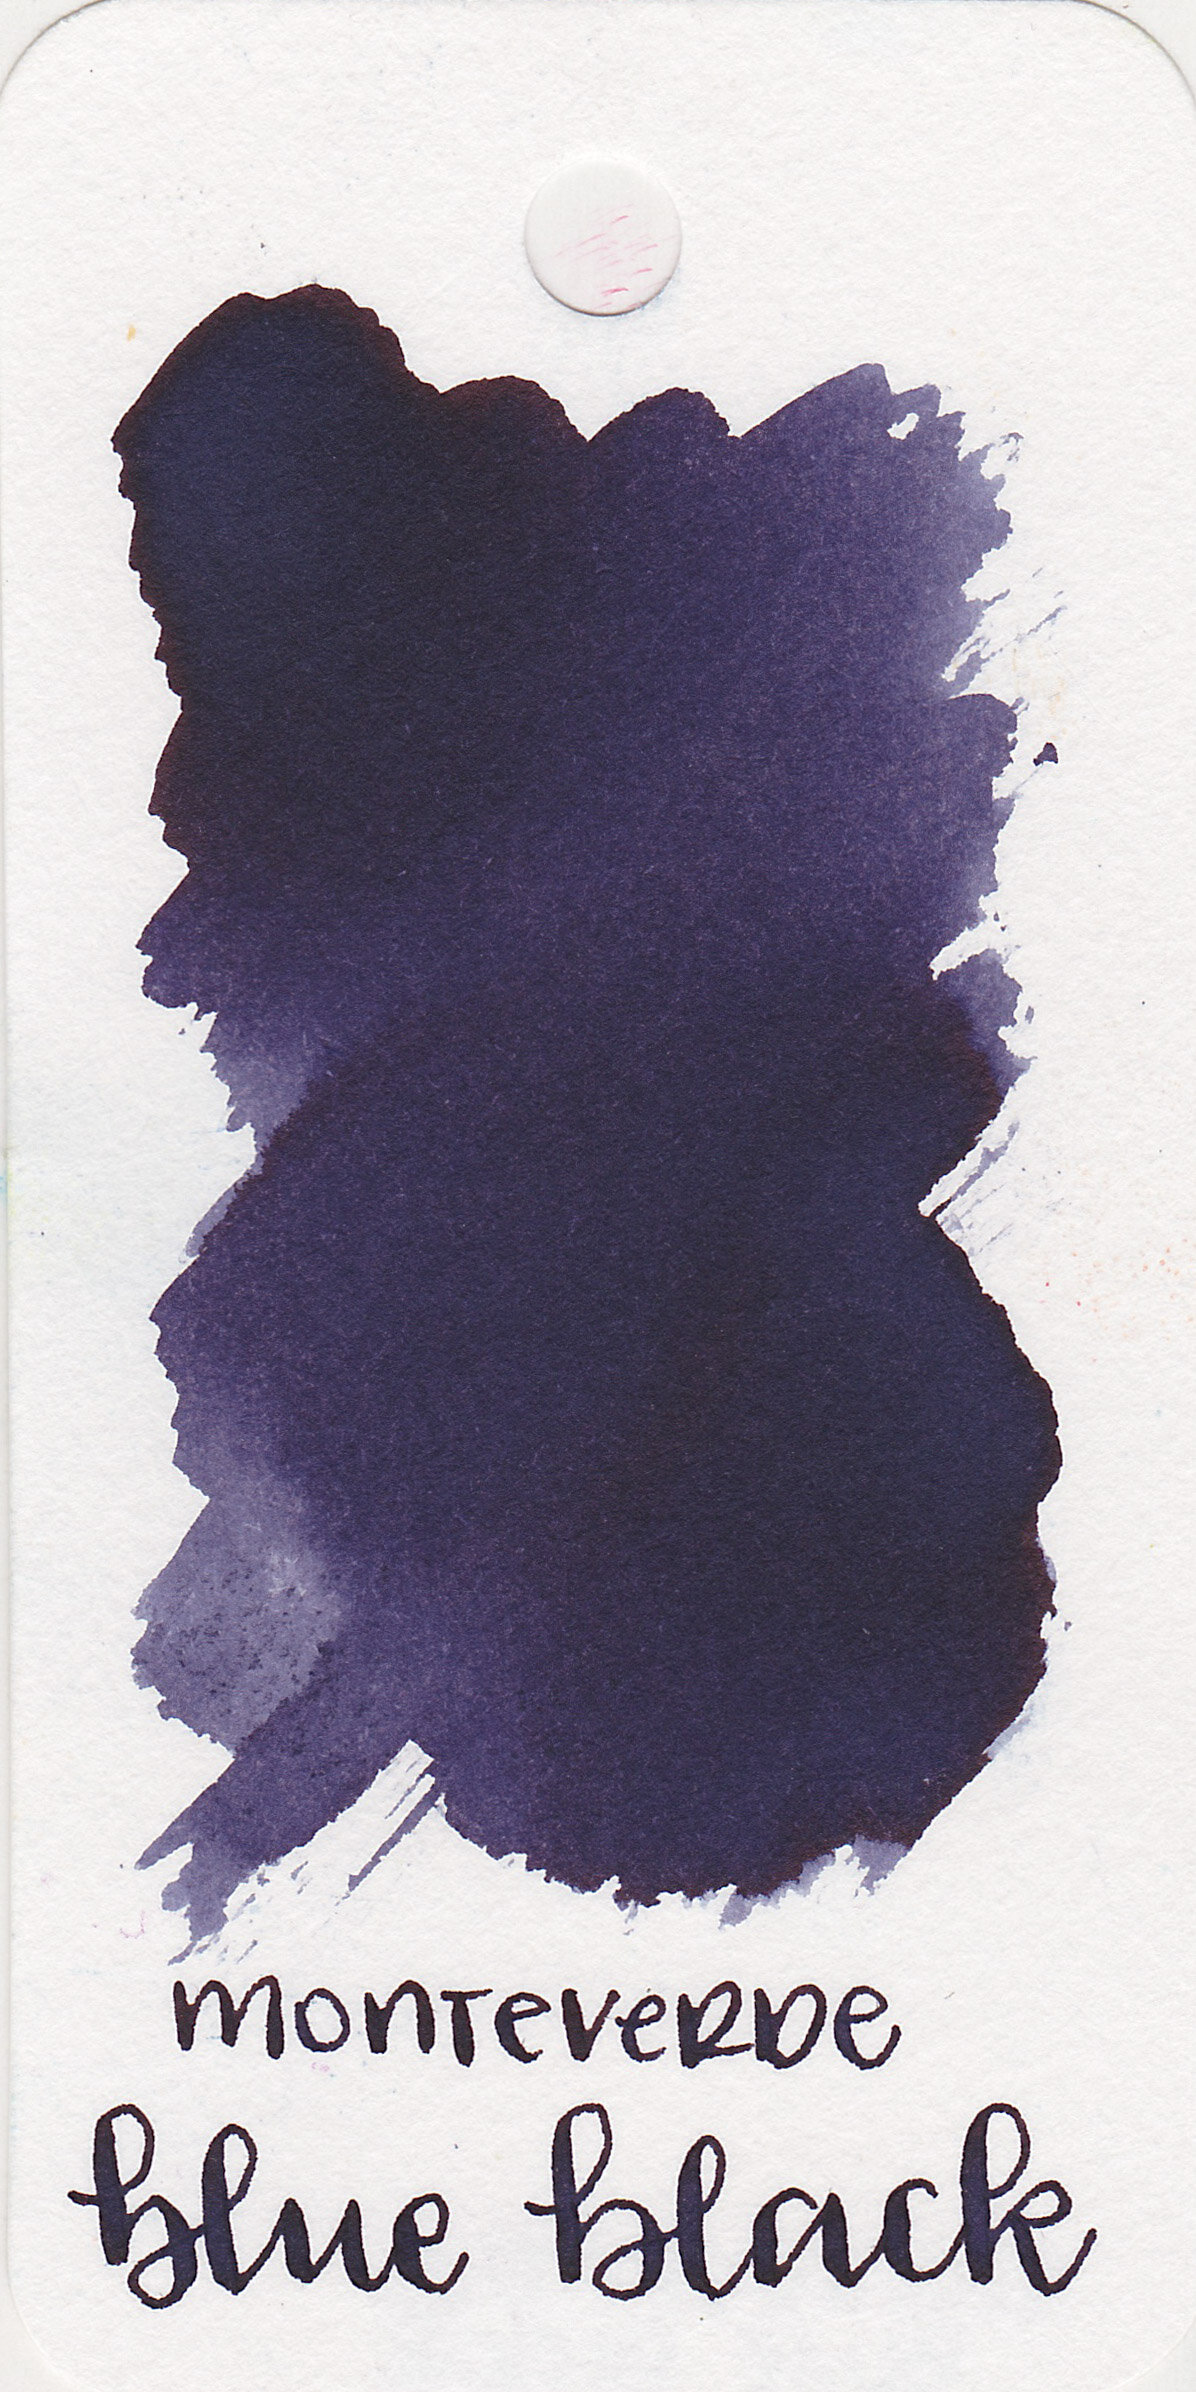 The color: - Blue Black is a dark blue black that leans toward purple.